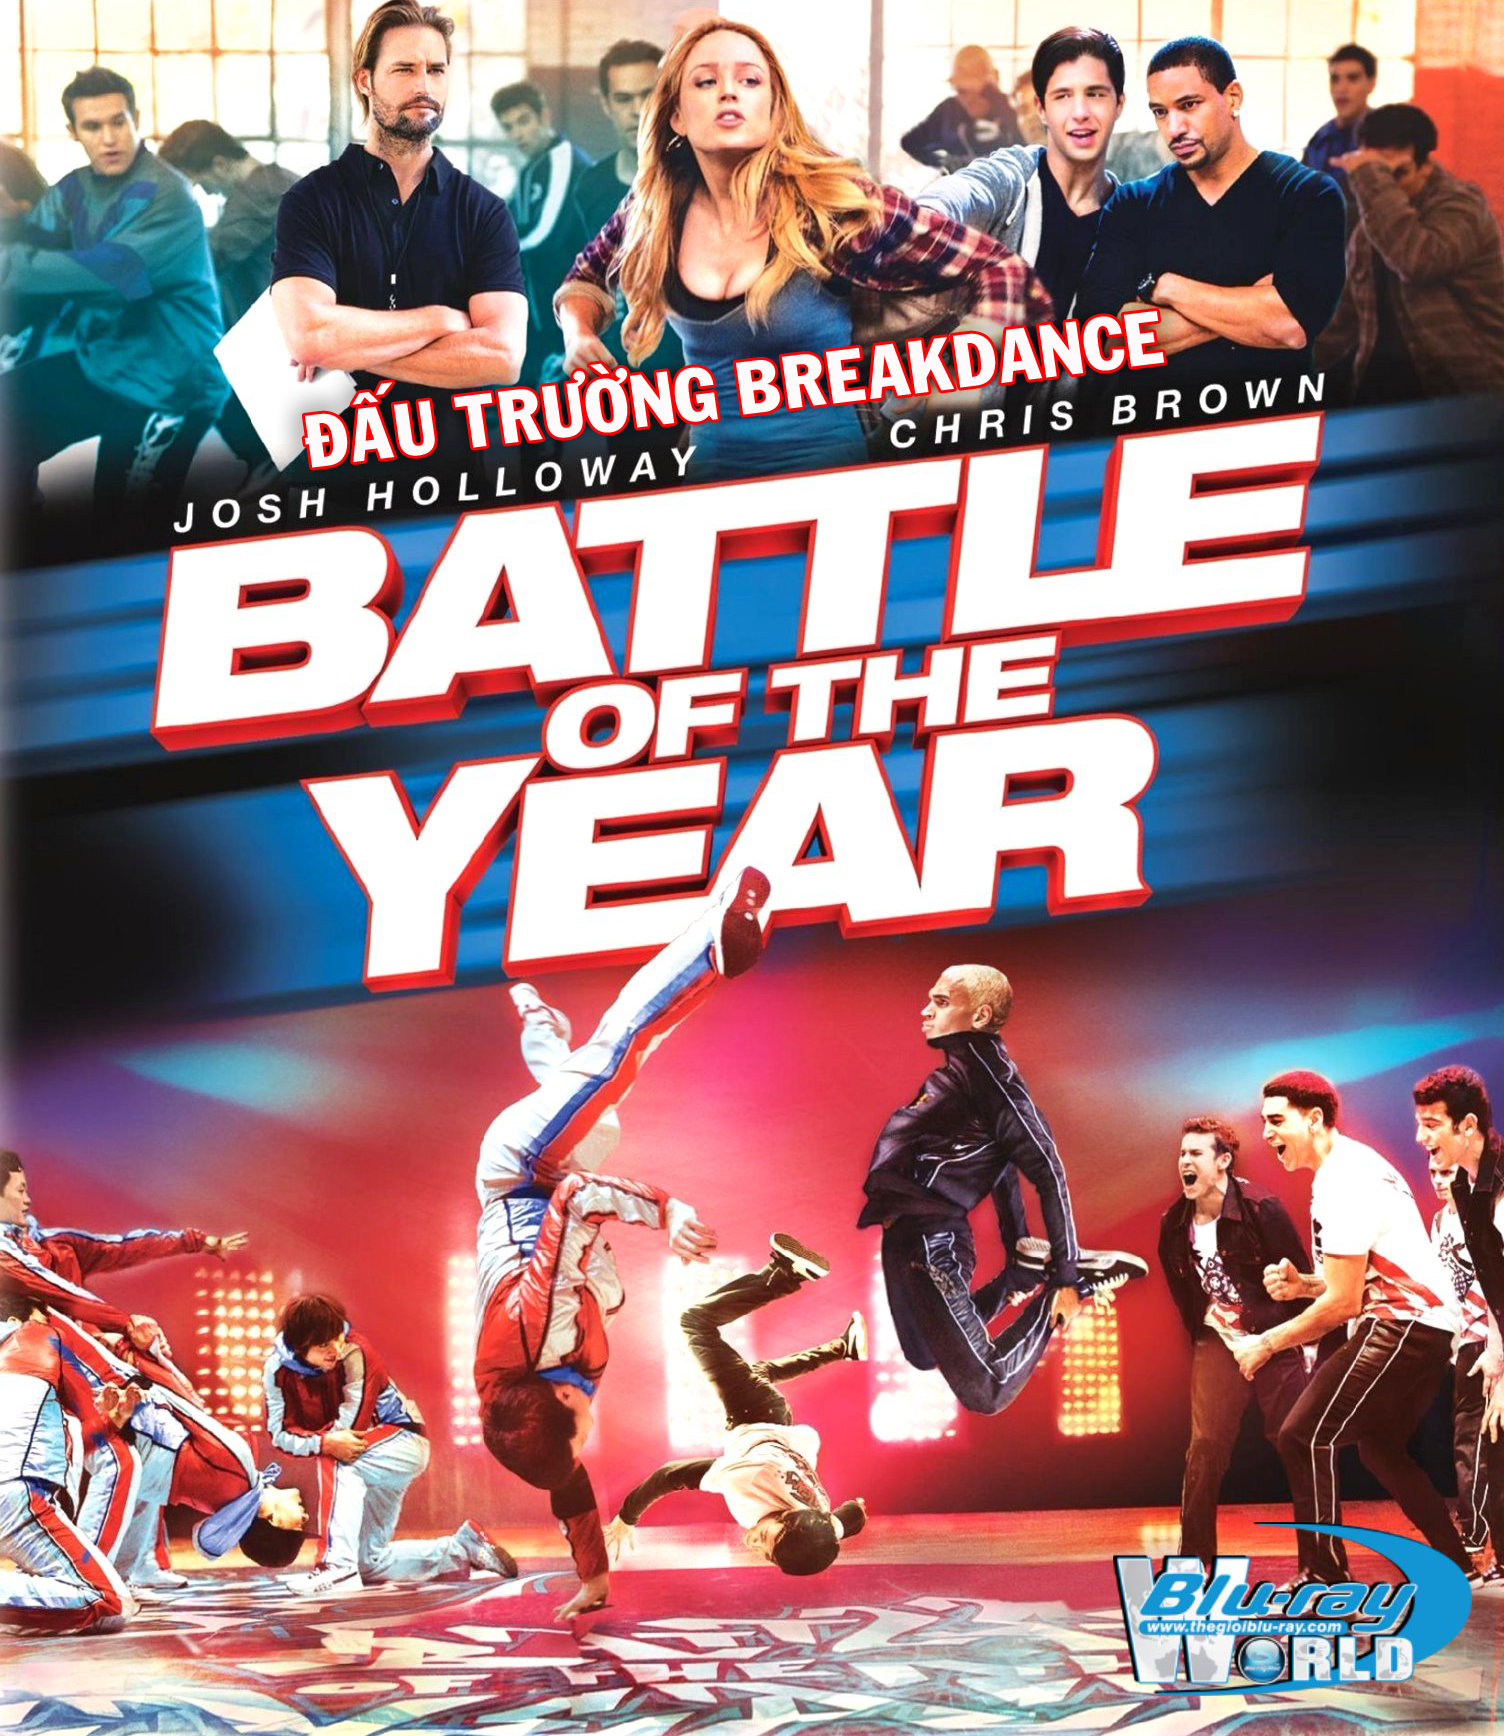 B1522. Battle of the Year The Dream Team - ĐẤU TRƯỜNG BREAKDANCE 2D 25G (DTS-HD MA 5.1)